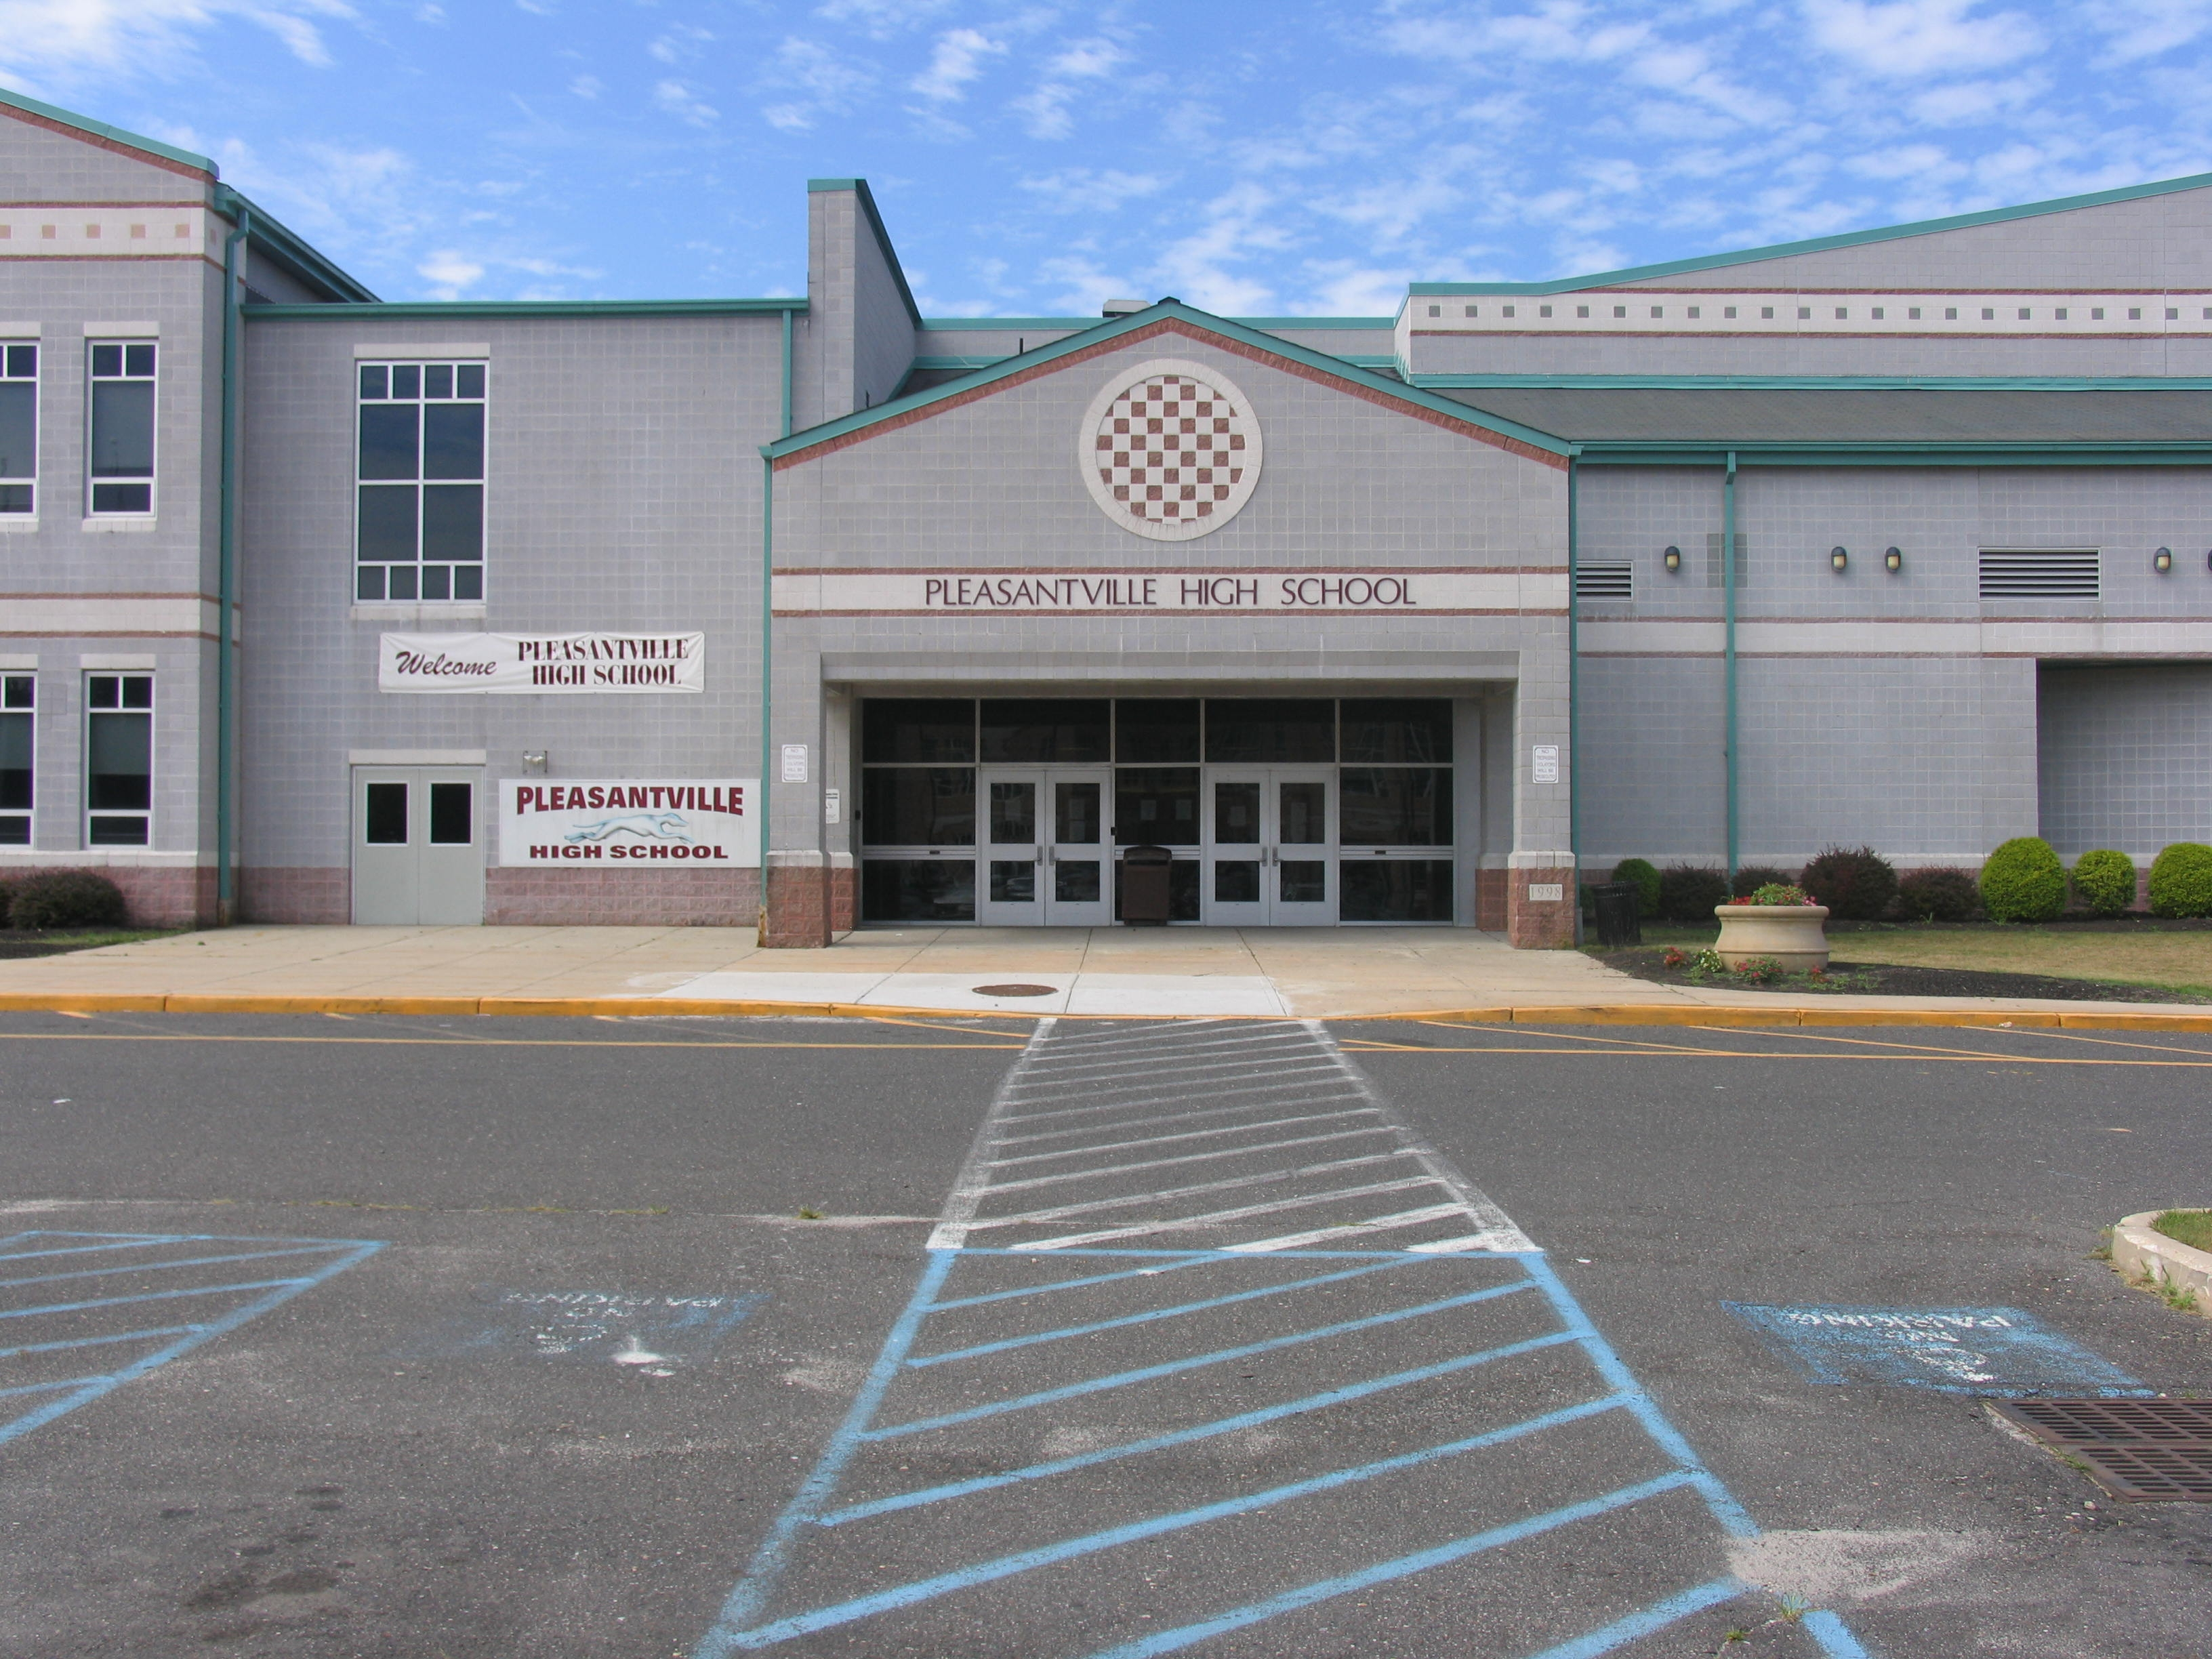 Pleasantville High School